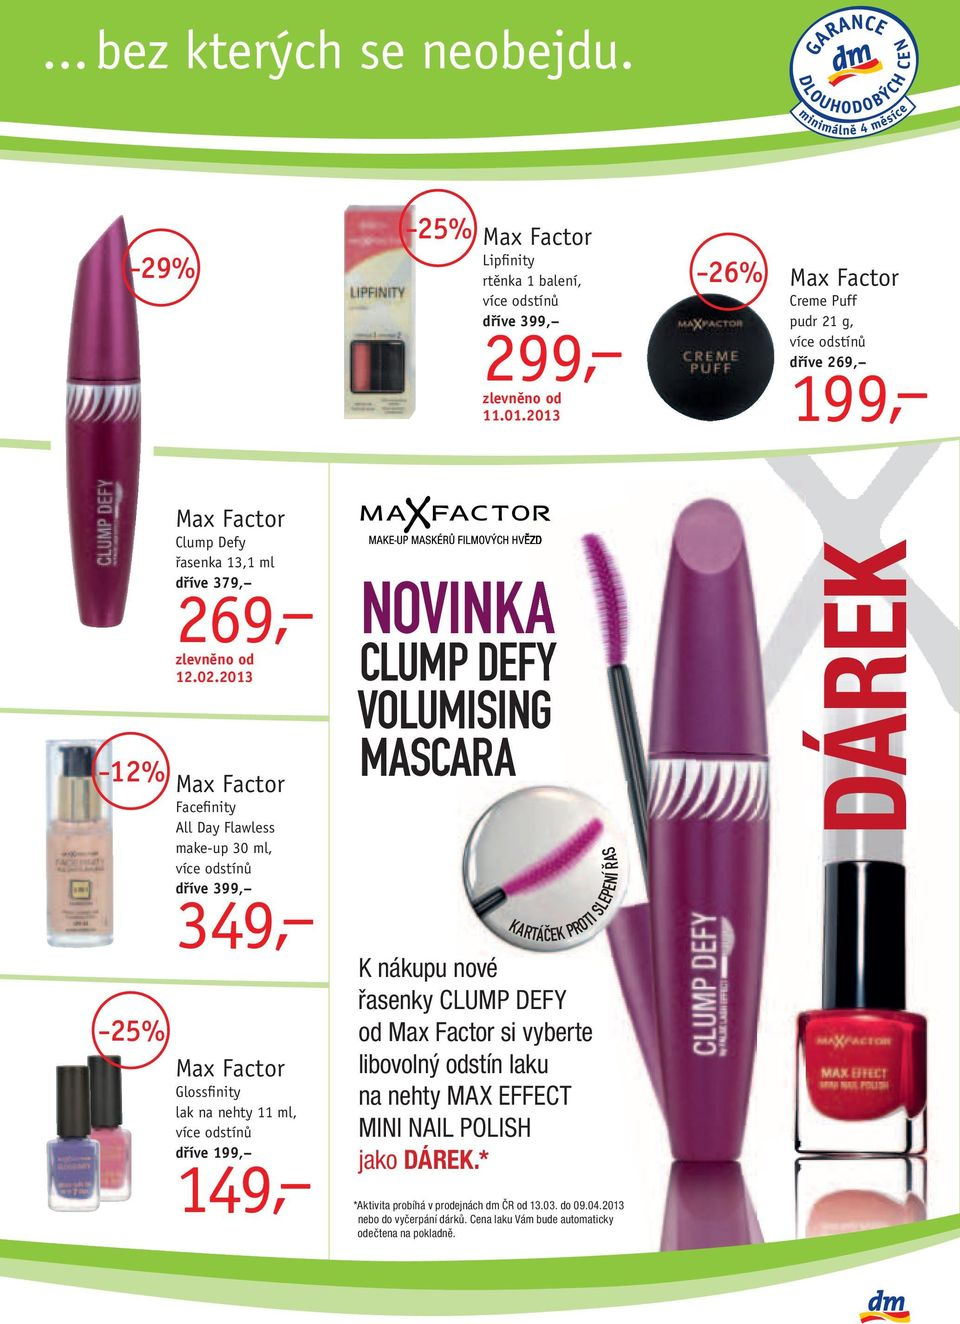 2013 Max Factor Facefinity All Day Flawless make-up 30 ml, dříve 399, 349, Max Factor Glossfinity lak na nehty 11 ml, dříve 199, 149, NOVINKA CLUMP DEFY VOLUMISING MASCARA K